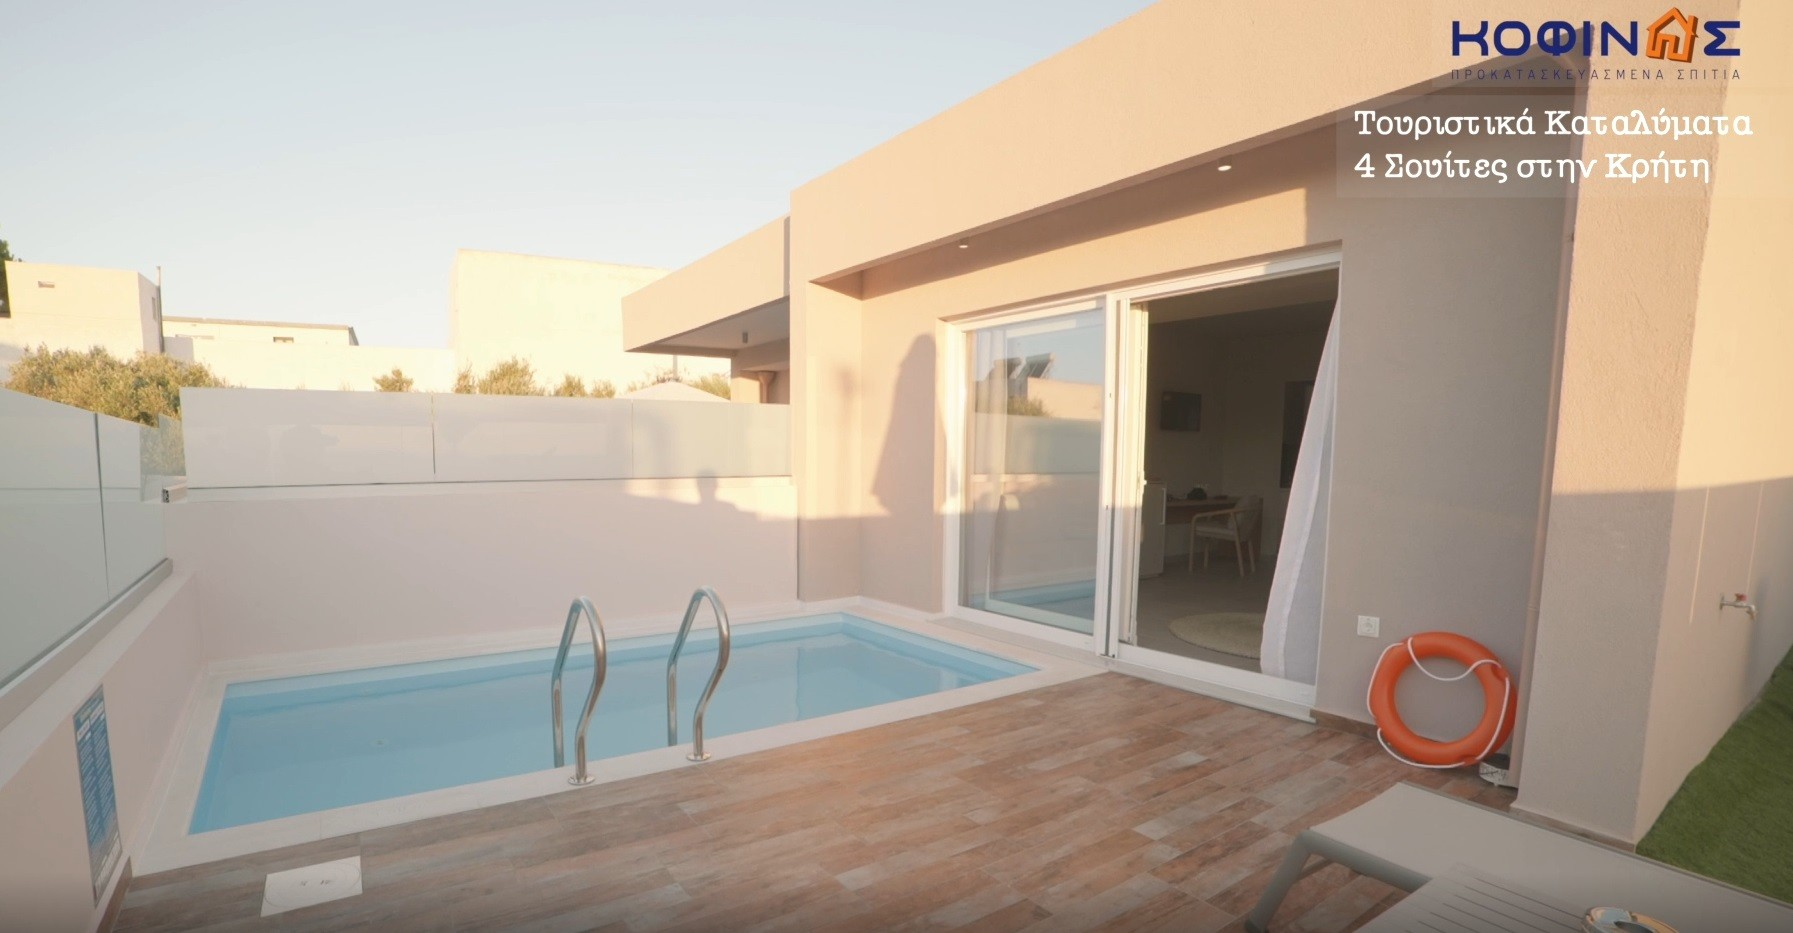 Prefabricated tourist accommodation 4 Suites of KOFINAS SA in Crete